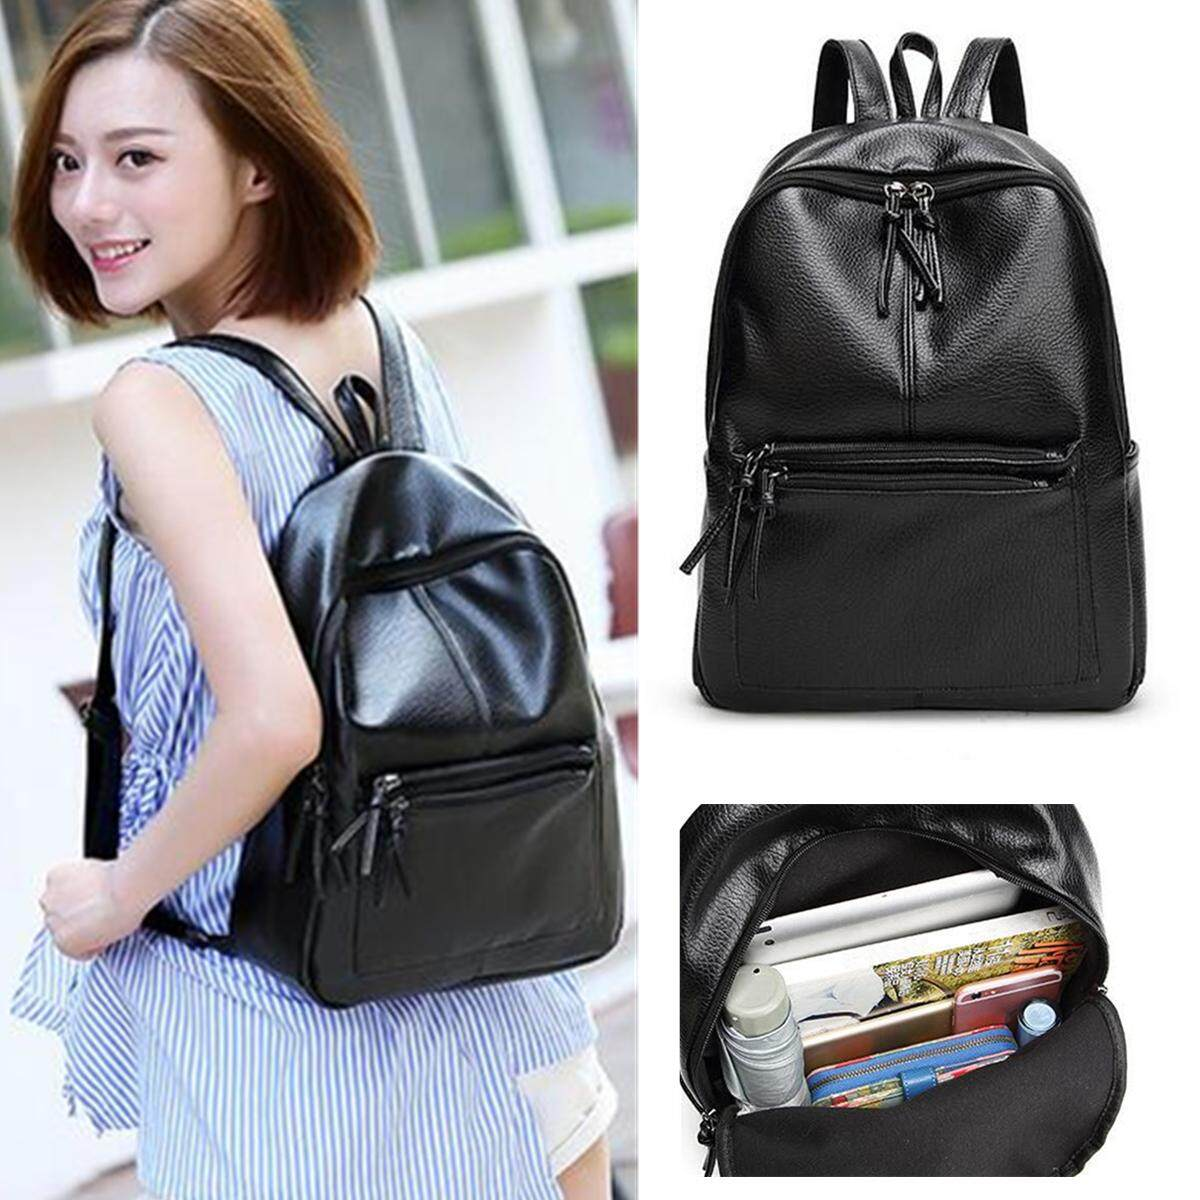 64af125684 Fashion Black PU Leather Women Backpack Casual New Item Travel School Bag